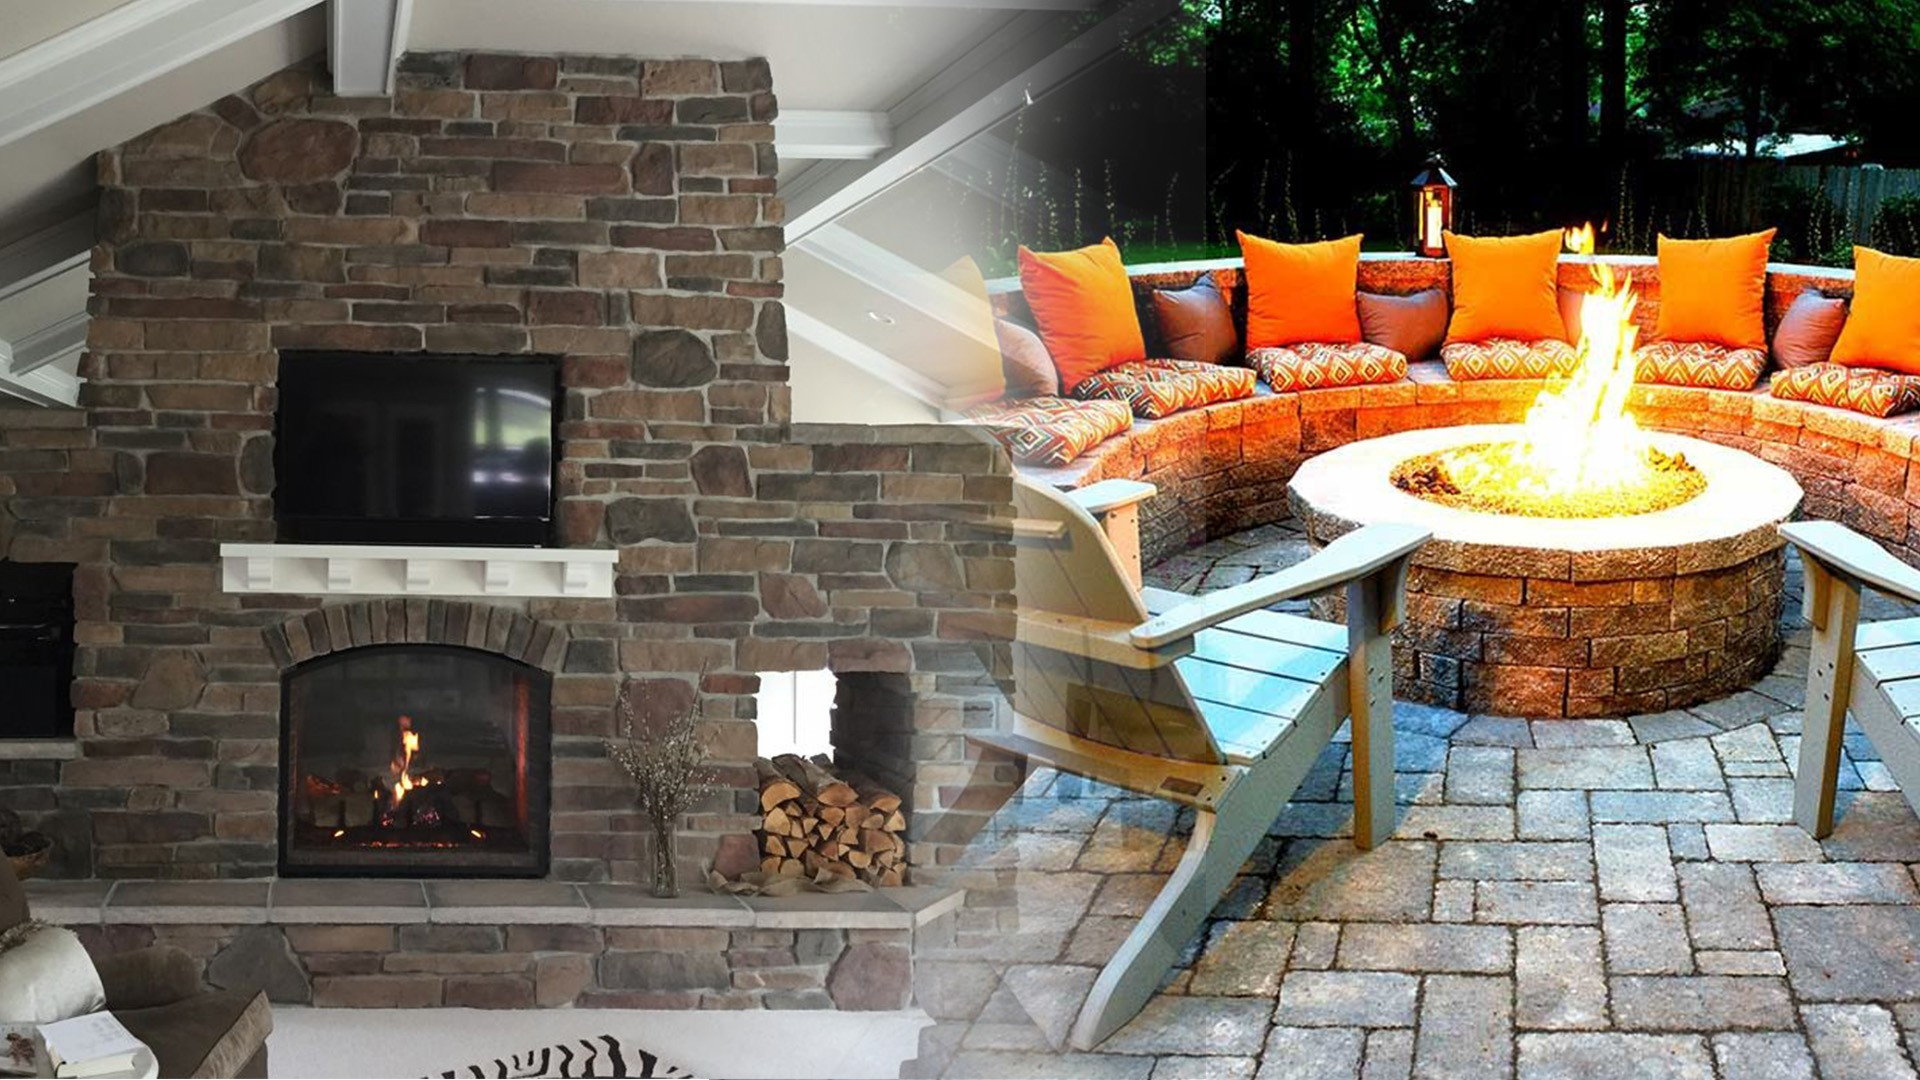 Outdoor Fireplaces & Fire Pits-Mesquite TX Professional Landscapers & Outdoor Living Designs-We offer Landscape Design, Outdoor Patios & Pergolas, Outdoor Living Spaces, Stonescapes, Residential & Commercial Landscaping, Irrigation Installation & Repairs, Drainage Systems, Landscape Lighting, Outdoor Living Spaces, Tree Service, Lawn Service, and more.